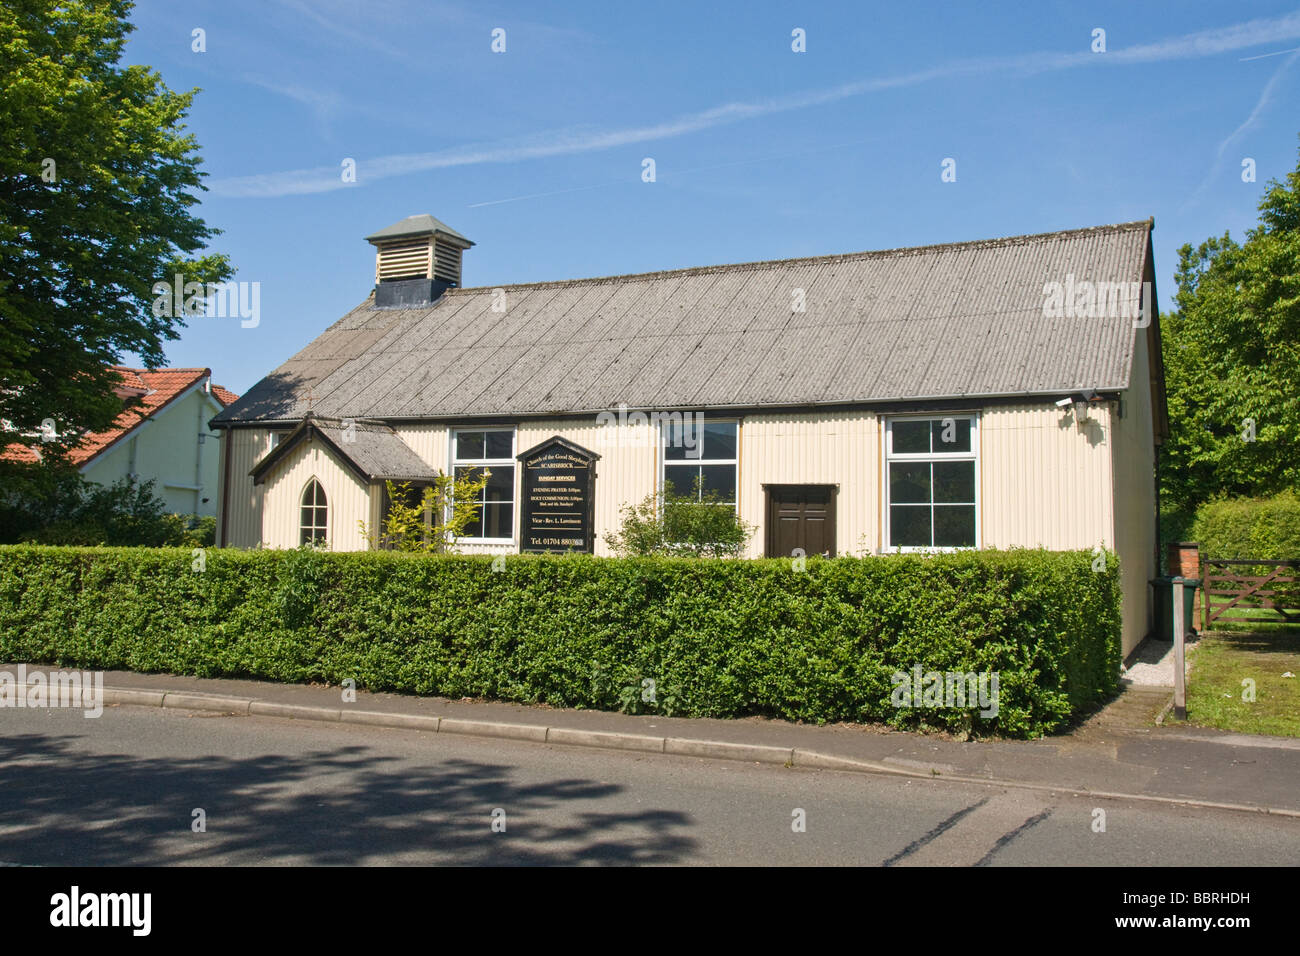 'Church of the Good Shepherd' at Scarisbrick. Building clad in corrugated iron. - Stock Image